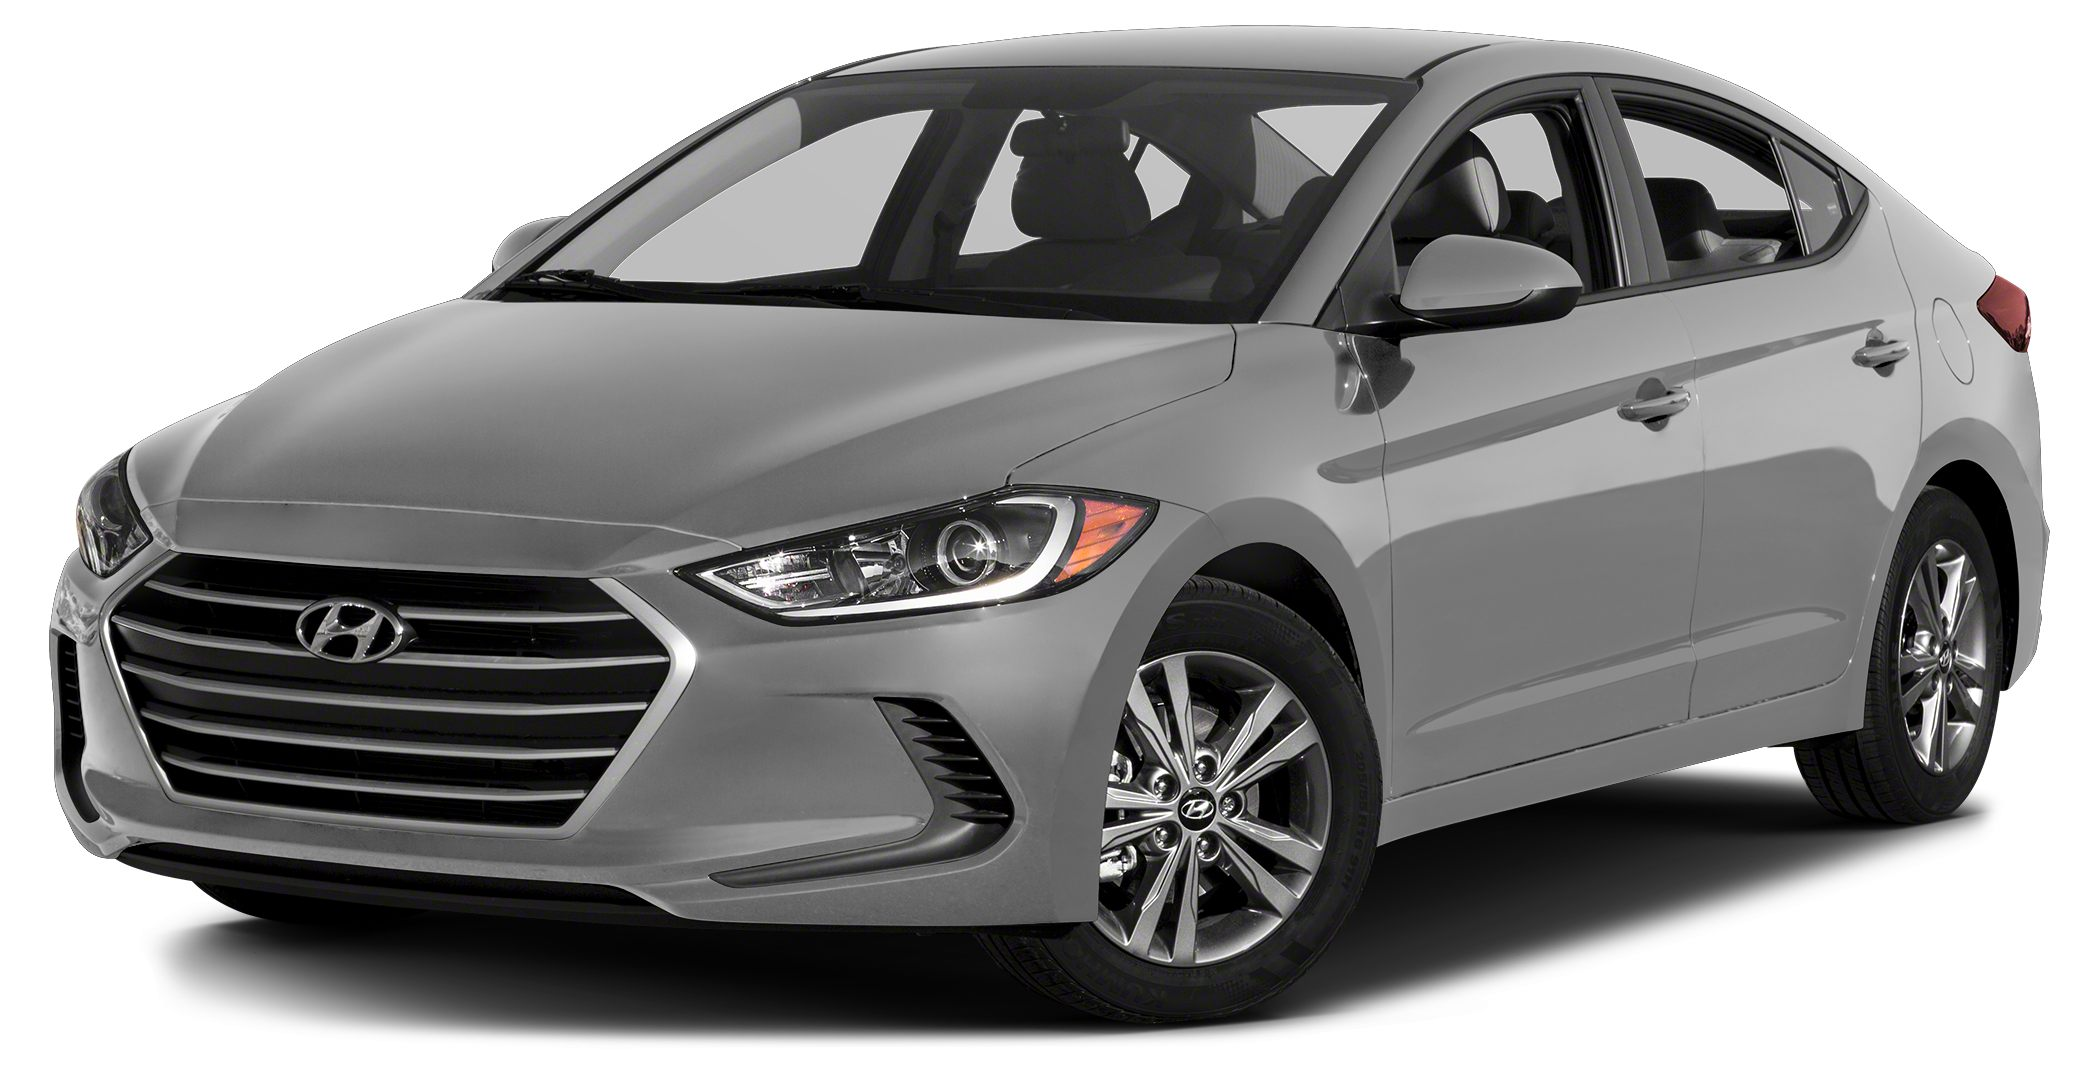 2017 Hyundai Elantra SE Recent Arrival WARRANTY FOREVER included at NO EXTRA COST See our Ex